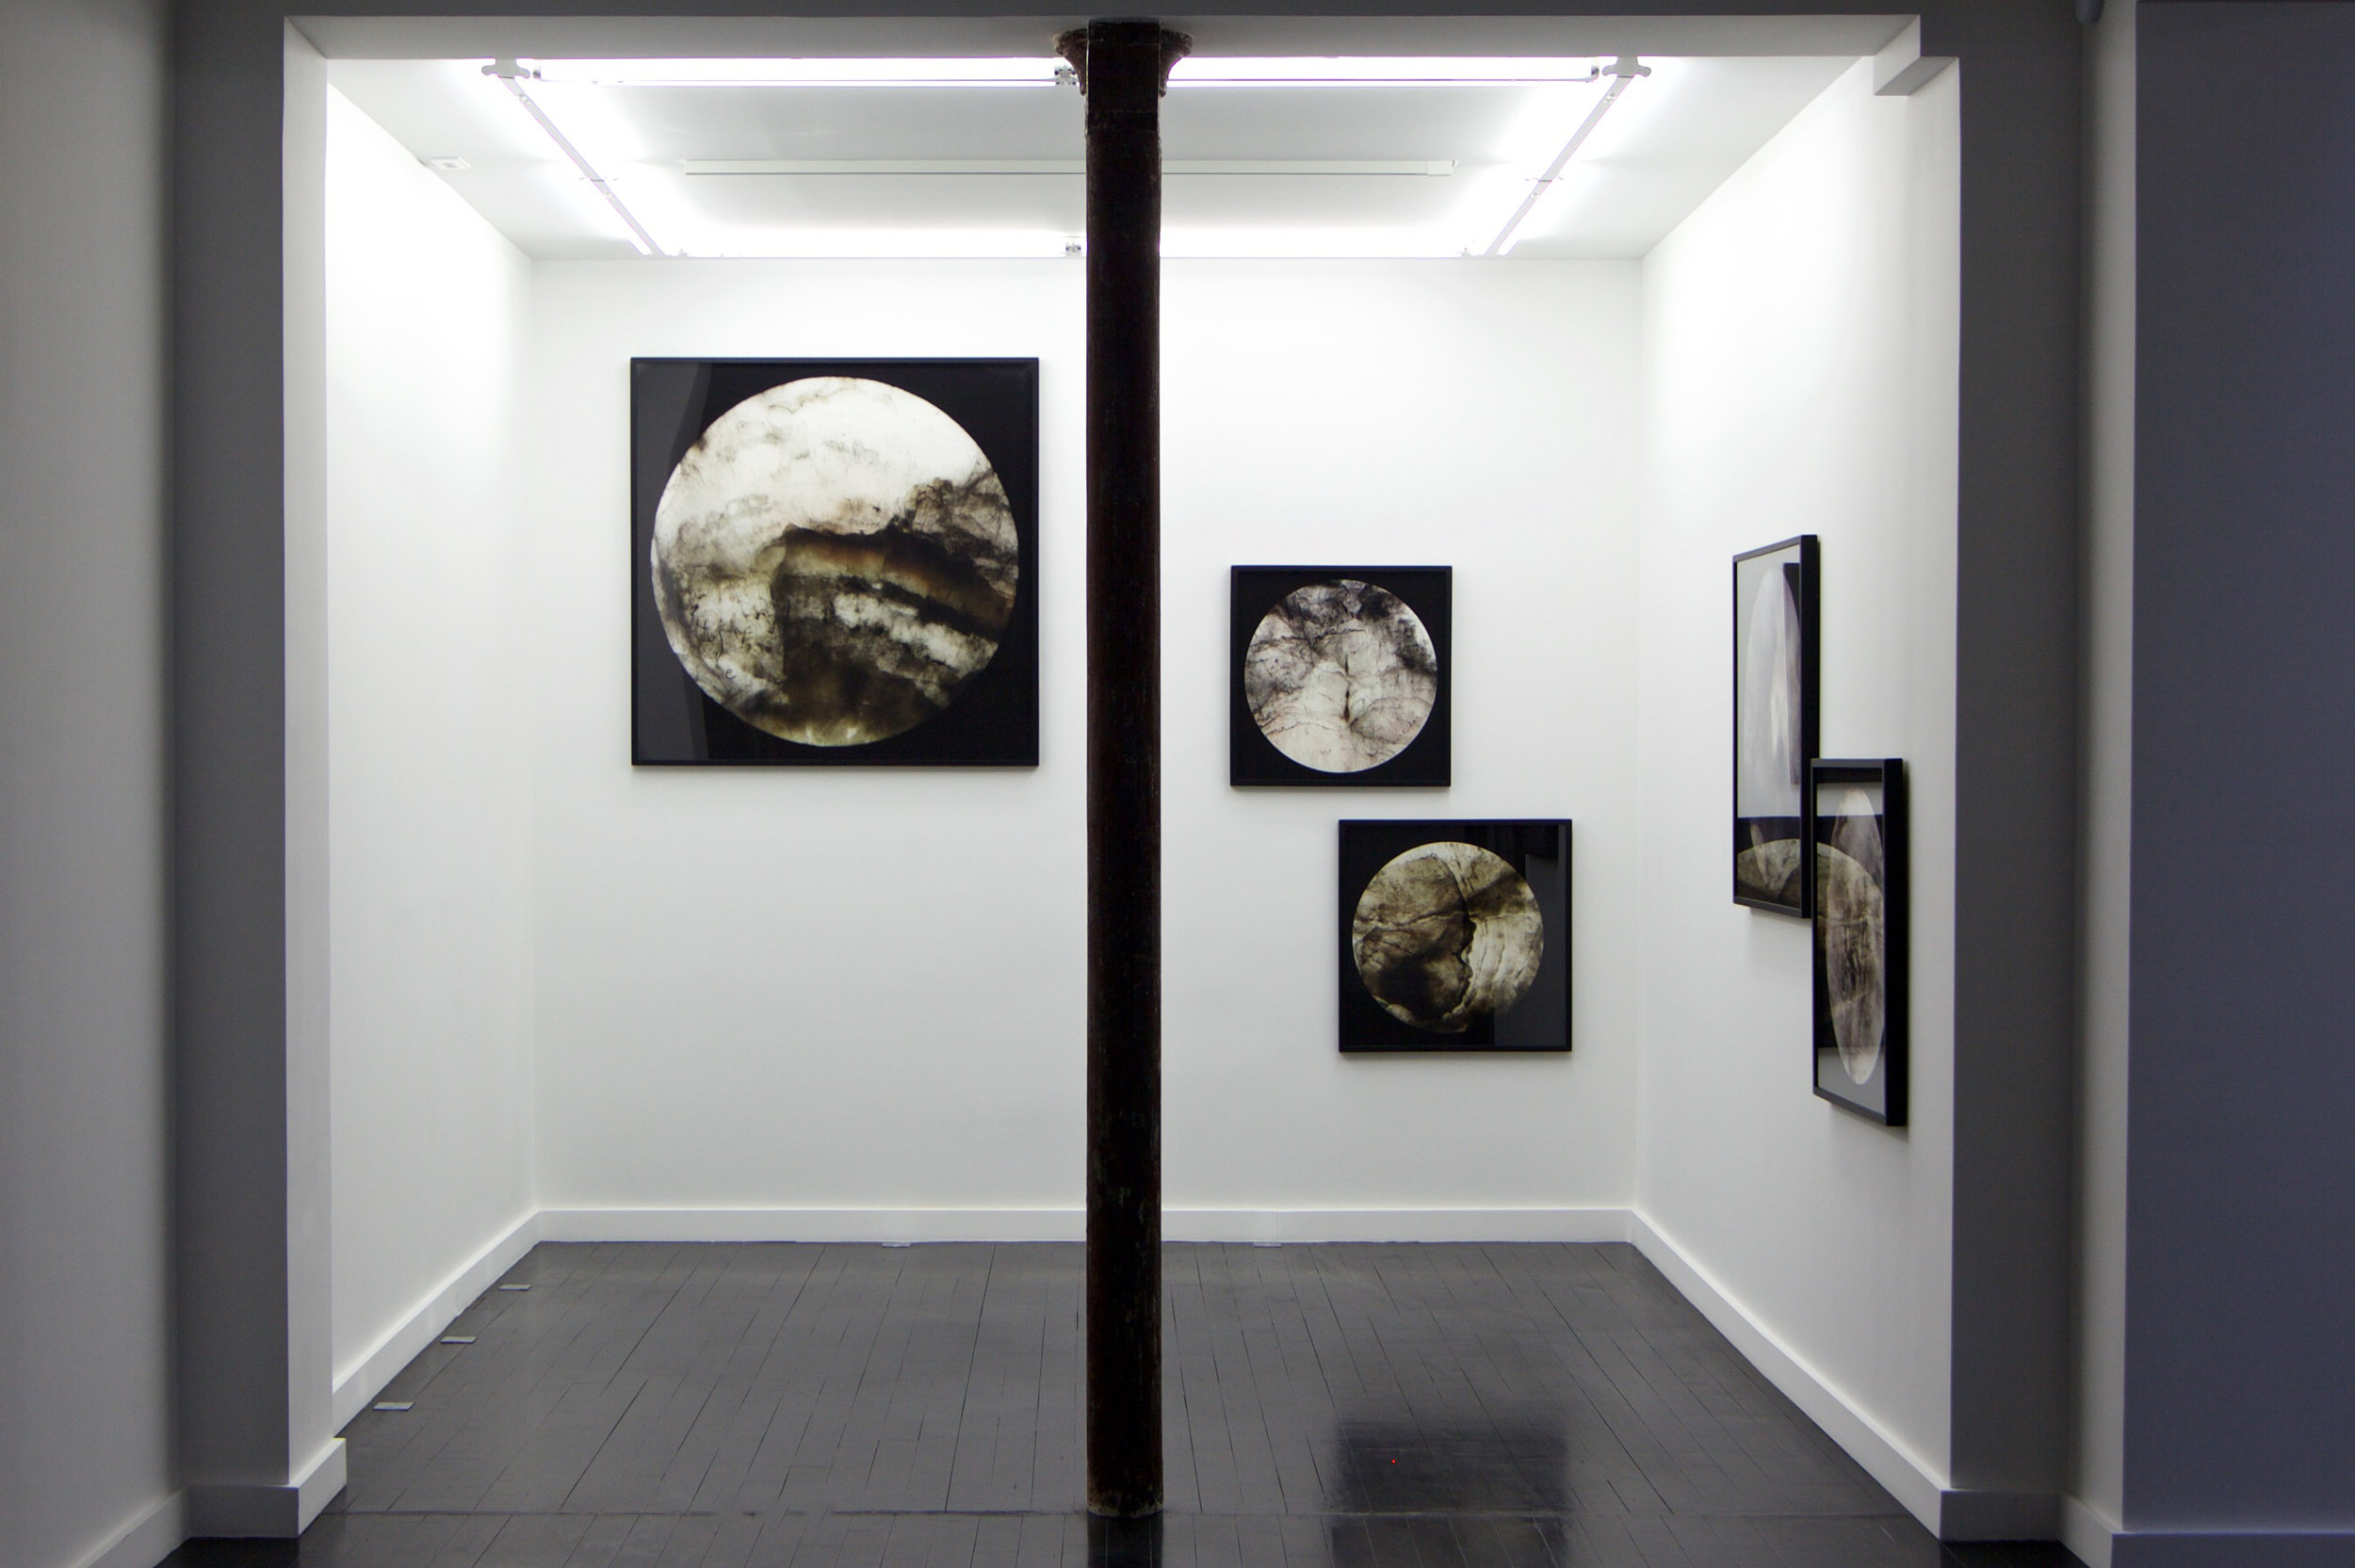 Exhibition view at mor charpentier gallery